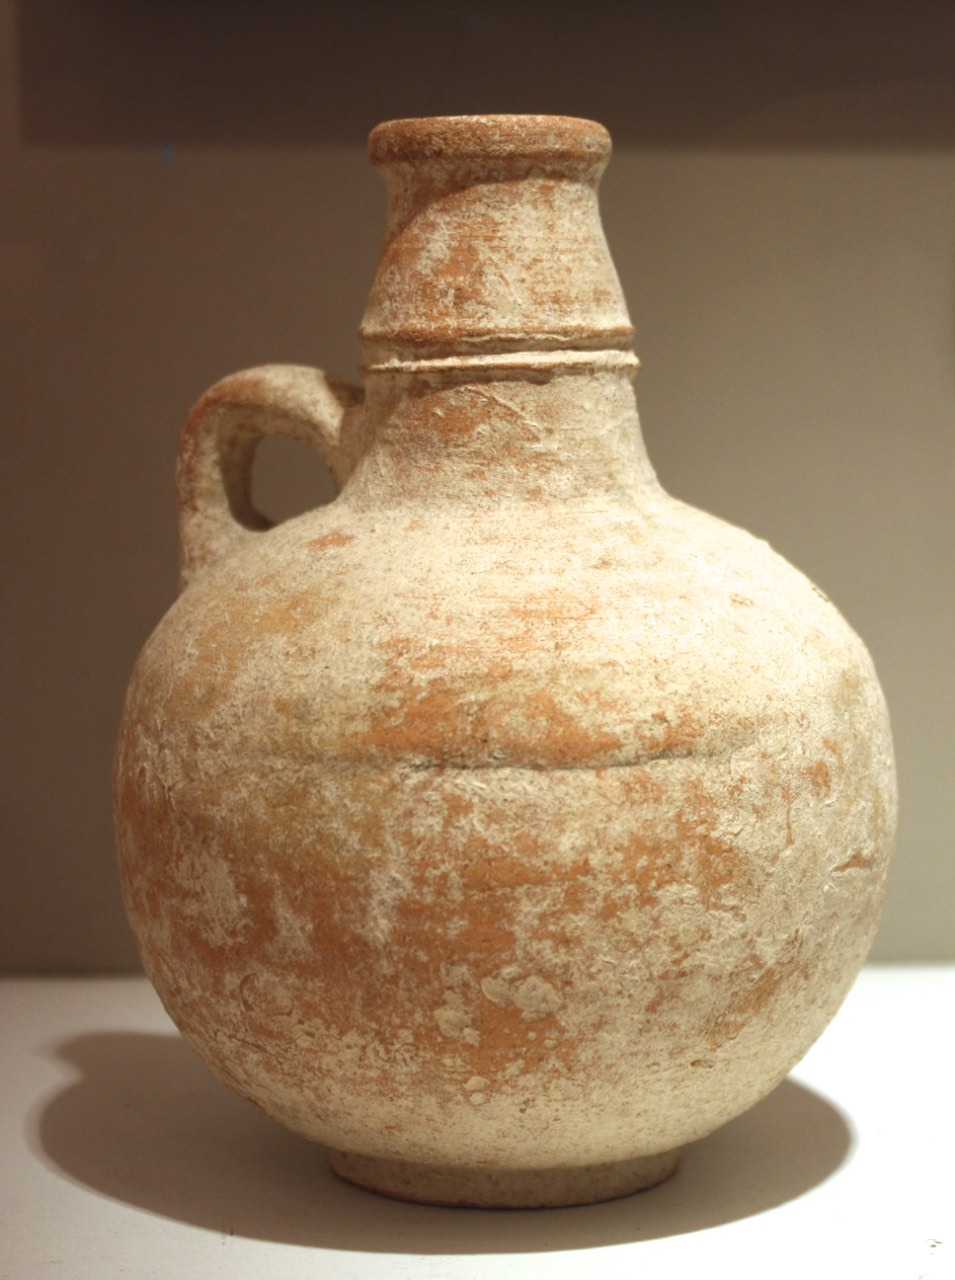 Ancient Terra Cotta Jug w/ Handle, Israel Iron Age I 2000 BC, $2600.